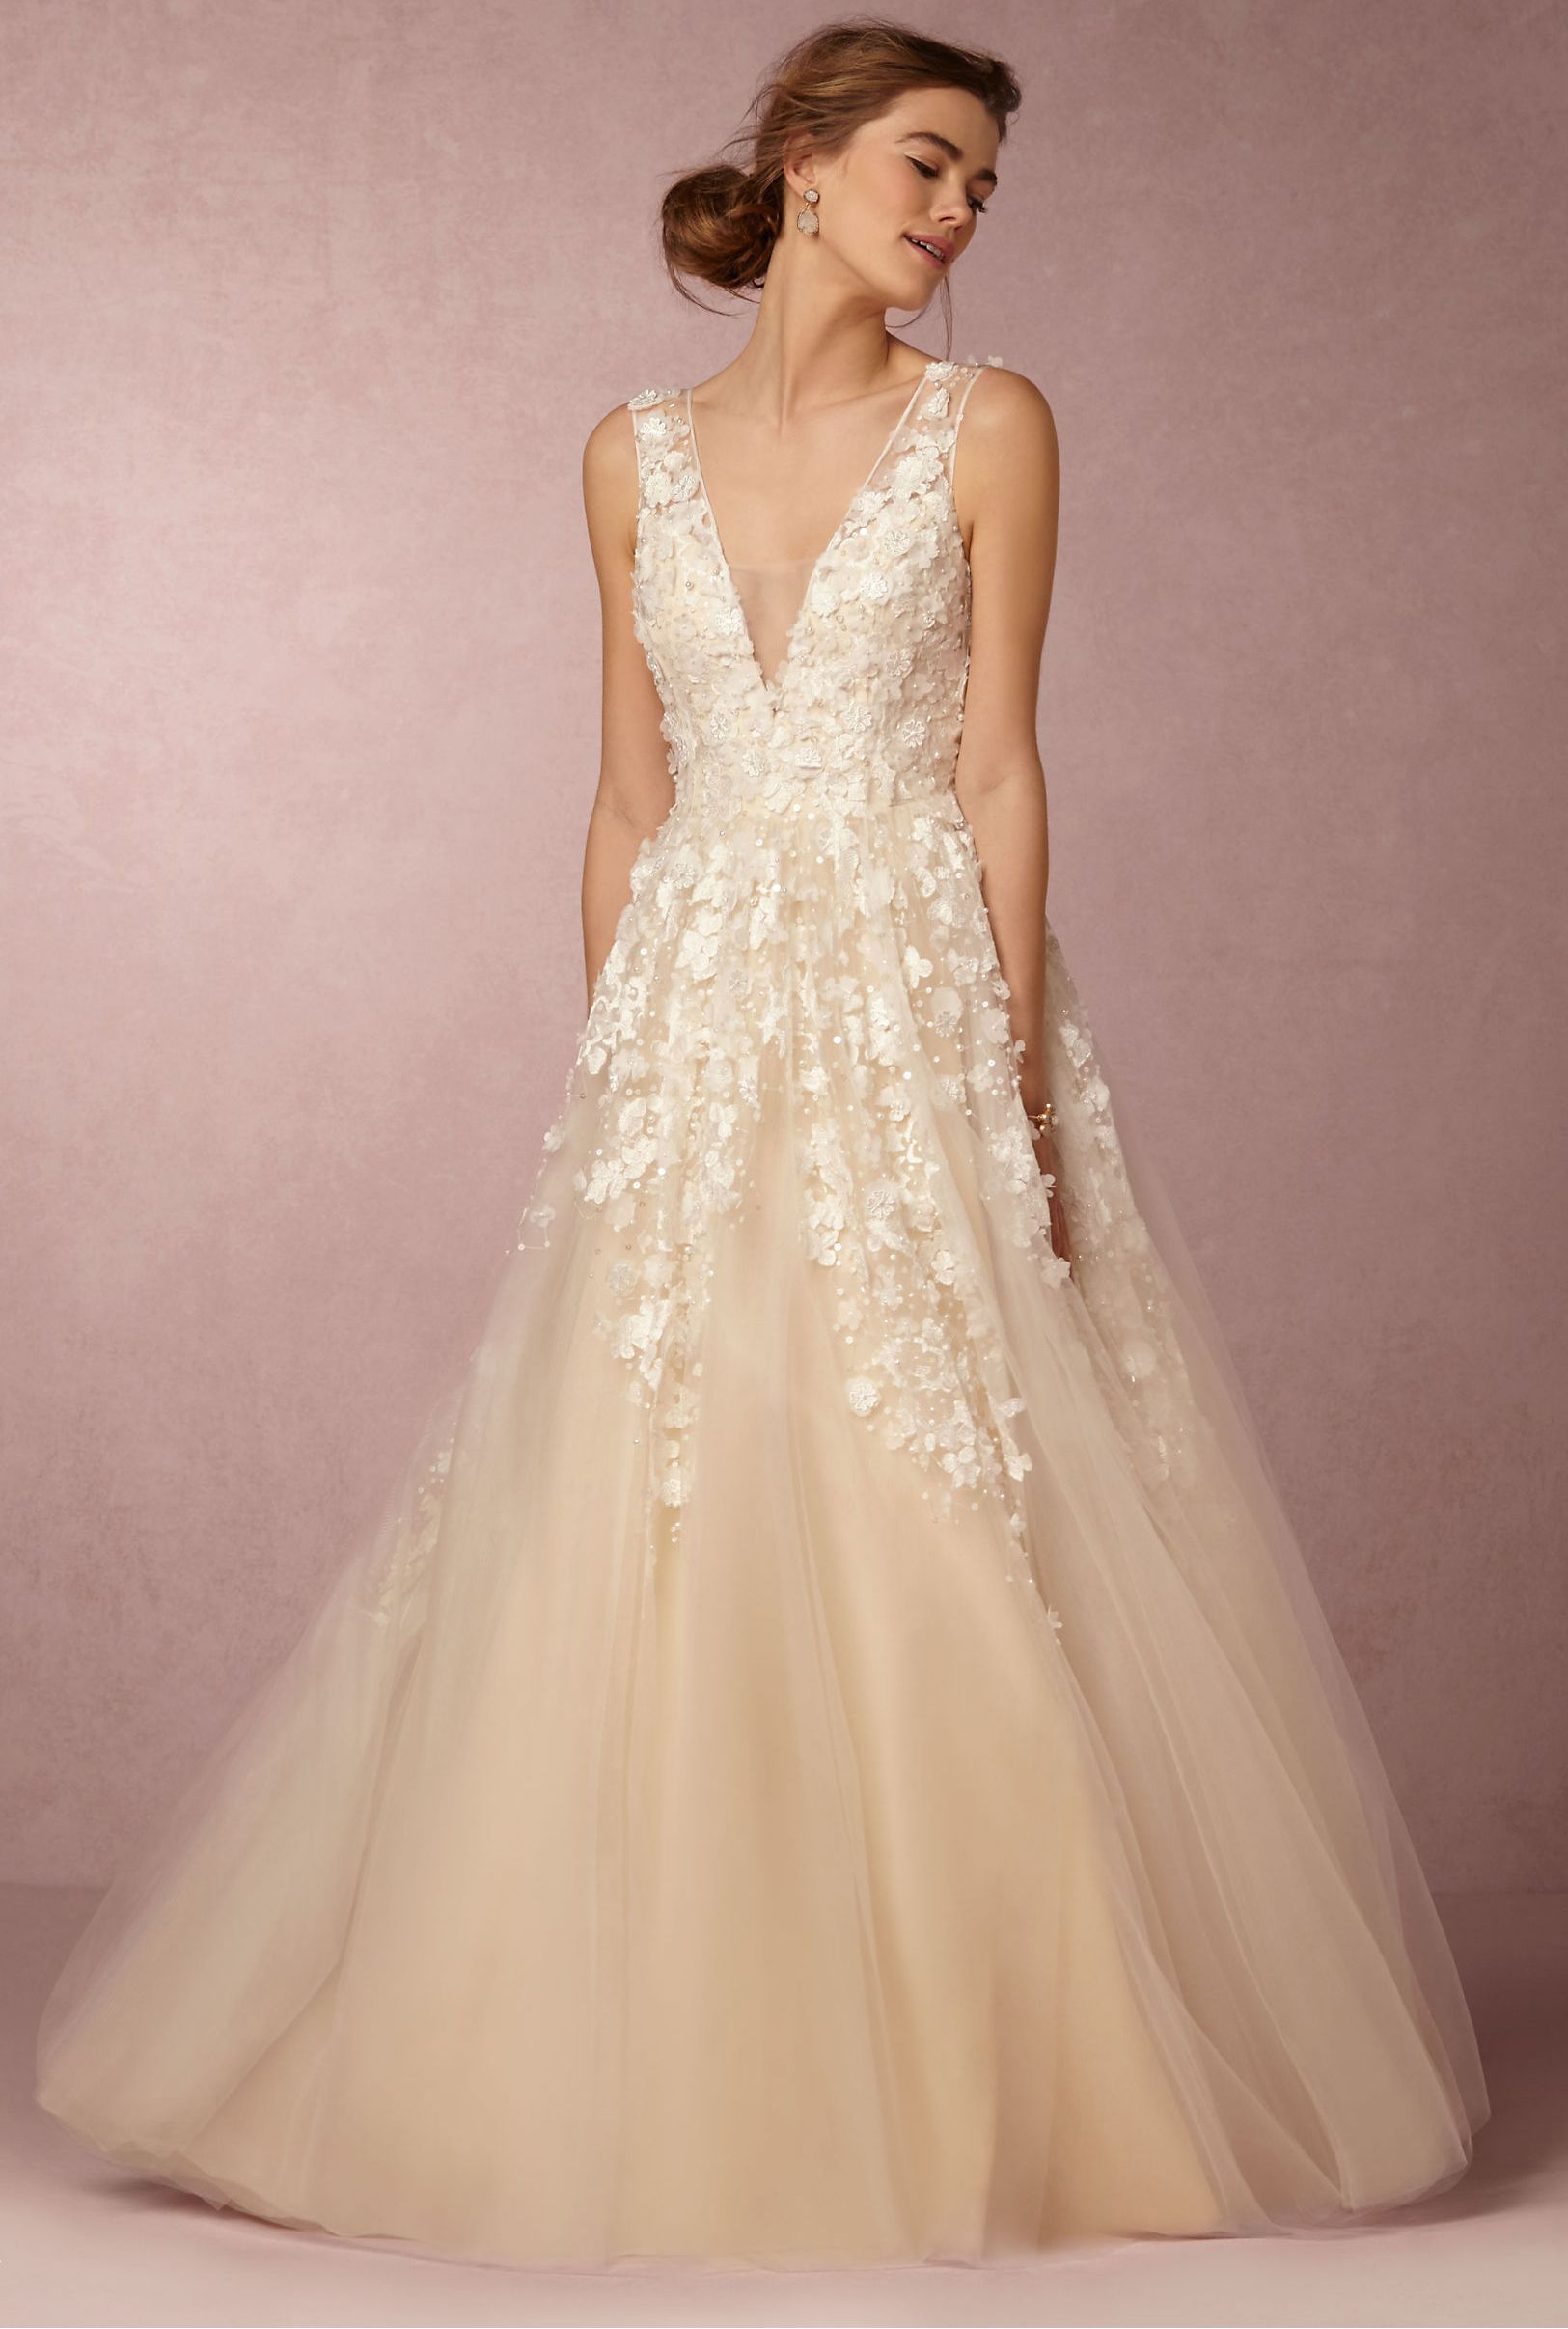 winter wedding dresses that will take your breath away winter